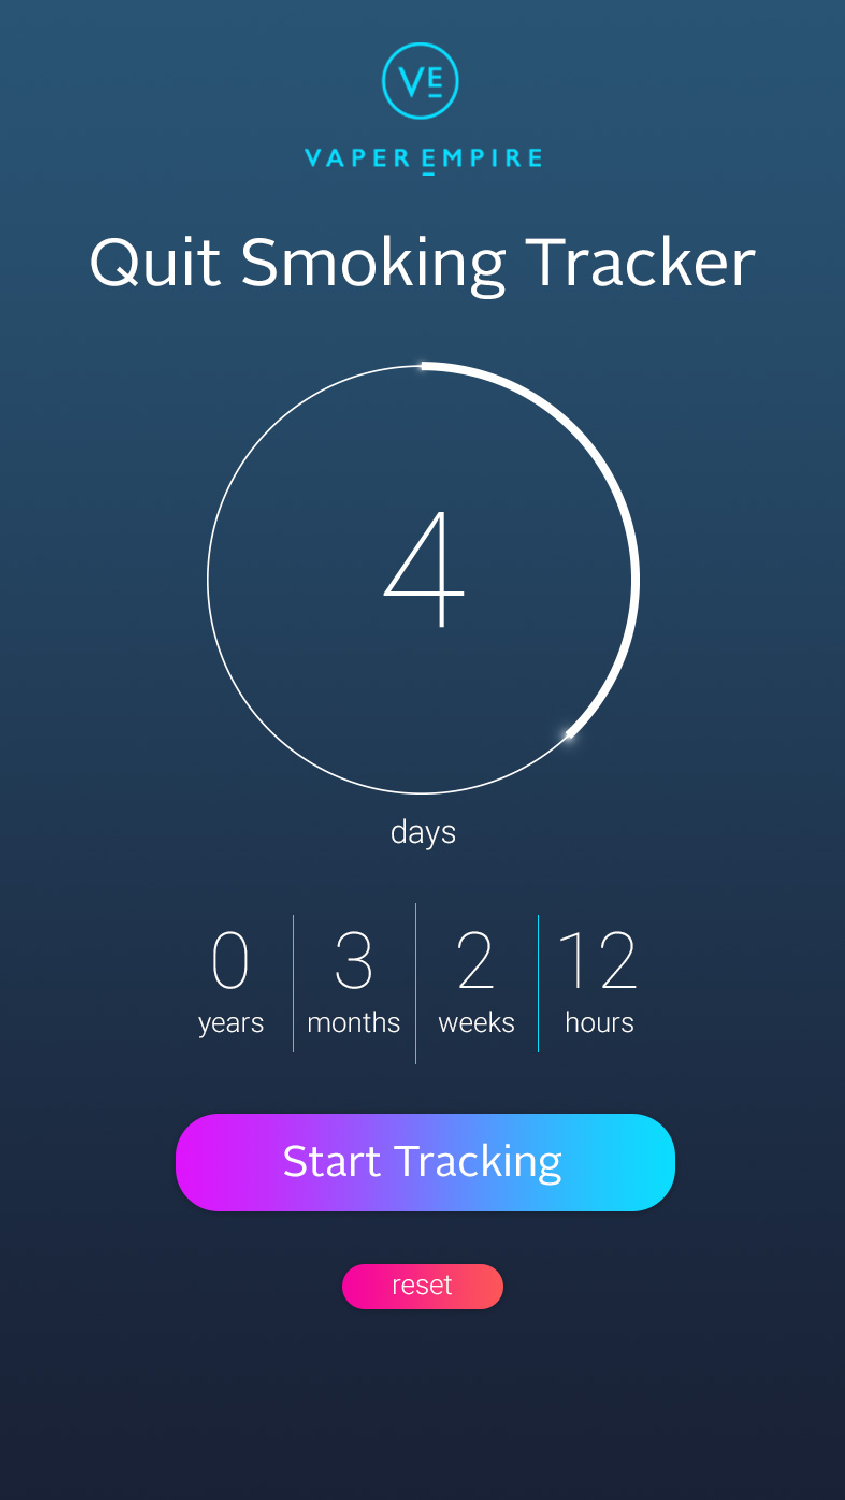 Vapers Can Track How Much Time Has Passed Since They Quit Smoking With This New App